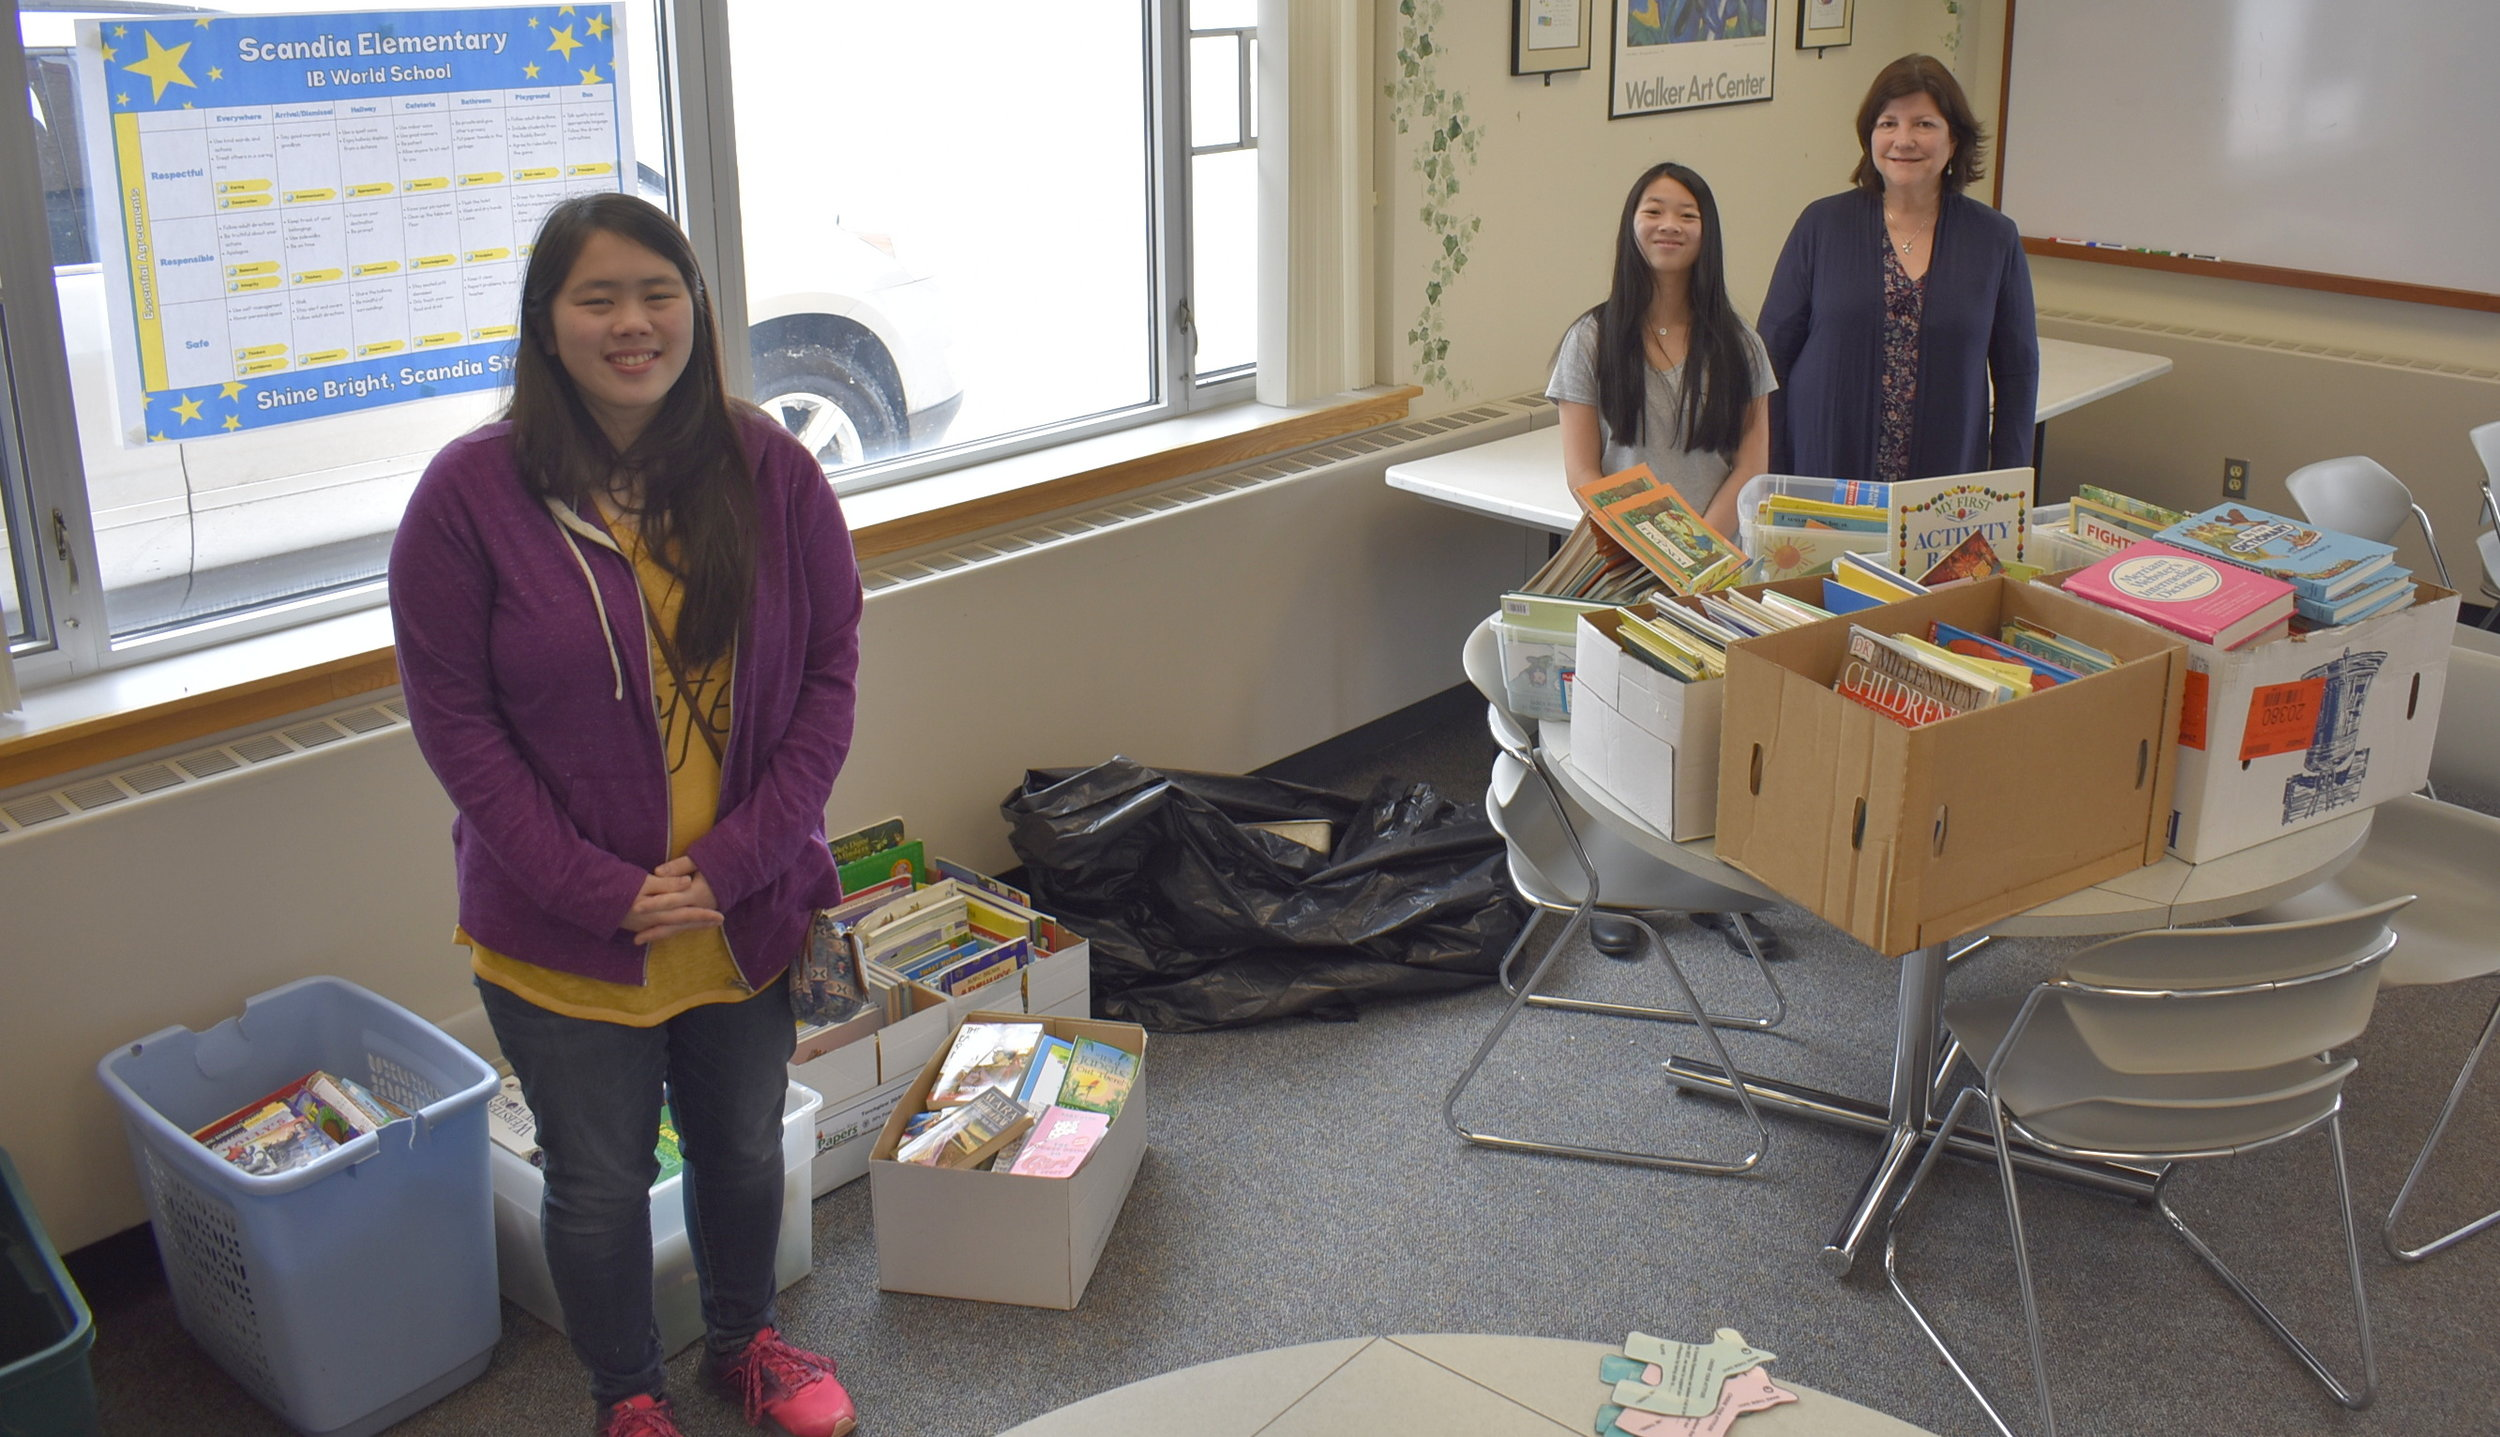 Teachers and staff from Scandia Elementary School donated a car load of children's books and teaching resources to create a library in Malawi, Africa through the African Library Project. Our goal was to collect 1,000 books and raise $500. After the One Stop Donation Drop, we collected 902 books. There were two more collection times happening during April to help reach the 1,000-book goal.  On May 16, 2018, we packed 1,012 books and shipped them to Africa to create the first-ever library for 465 orphans and vulnerable children!